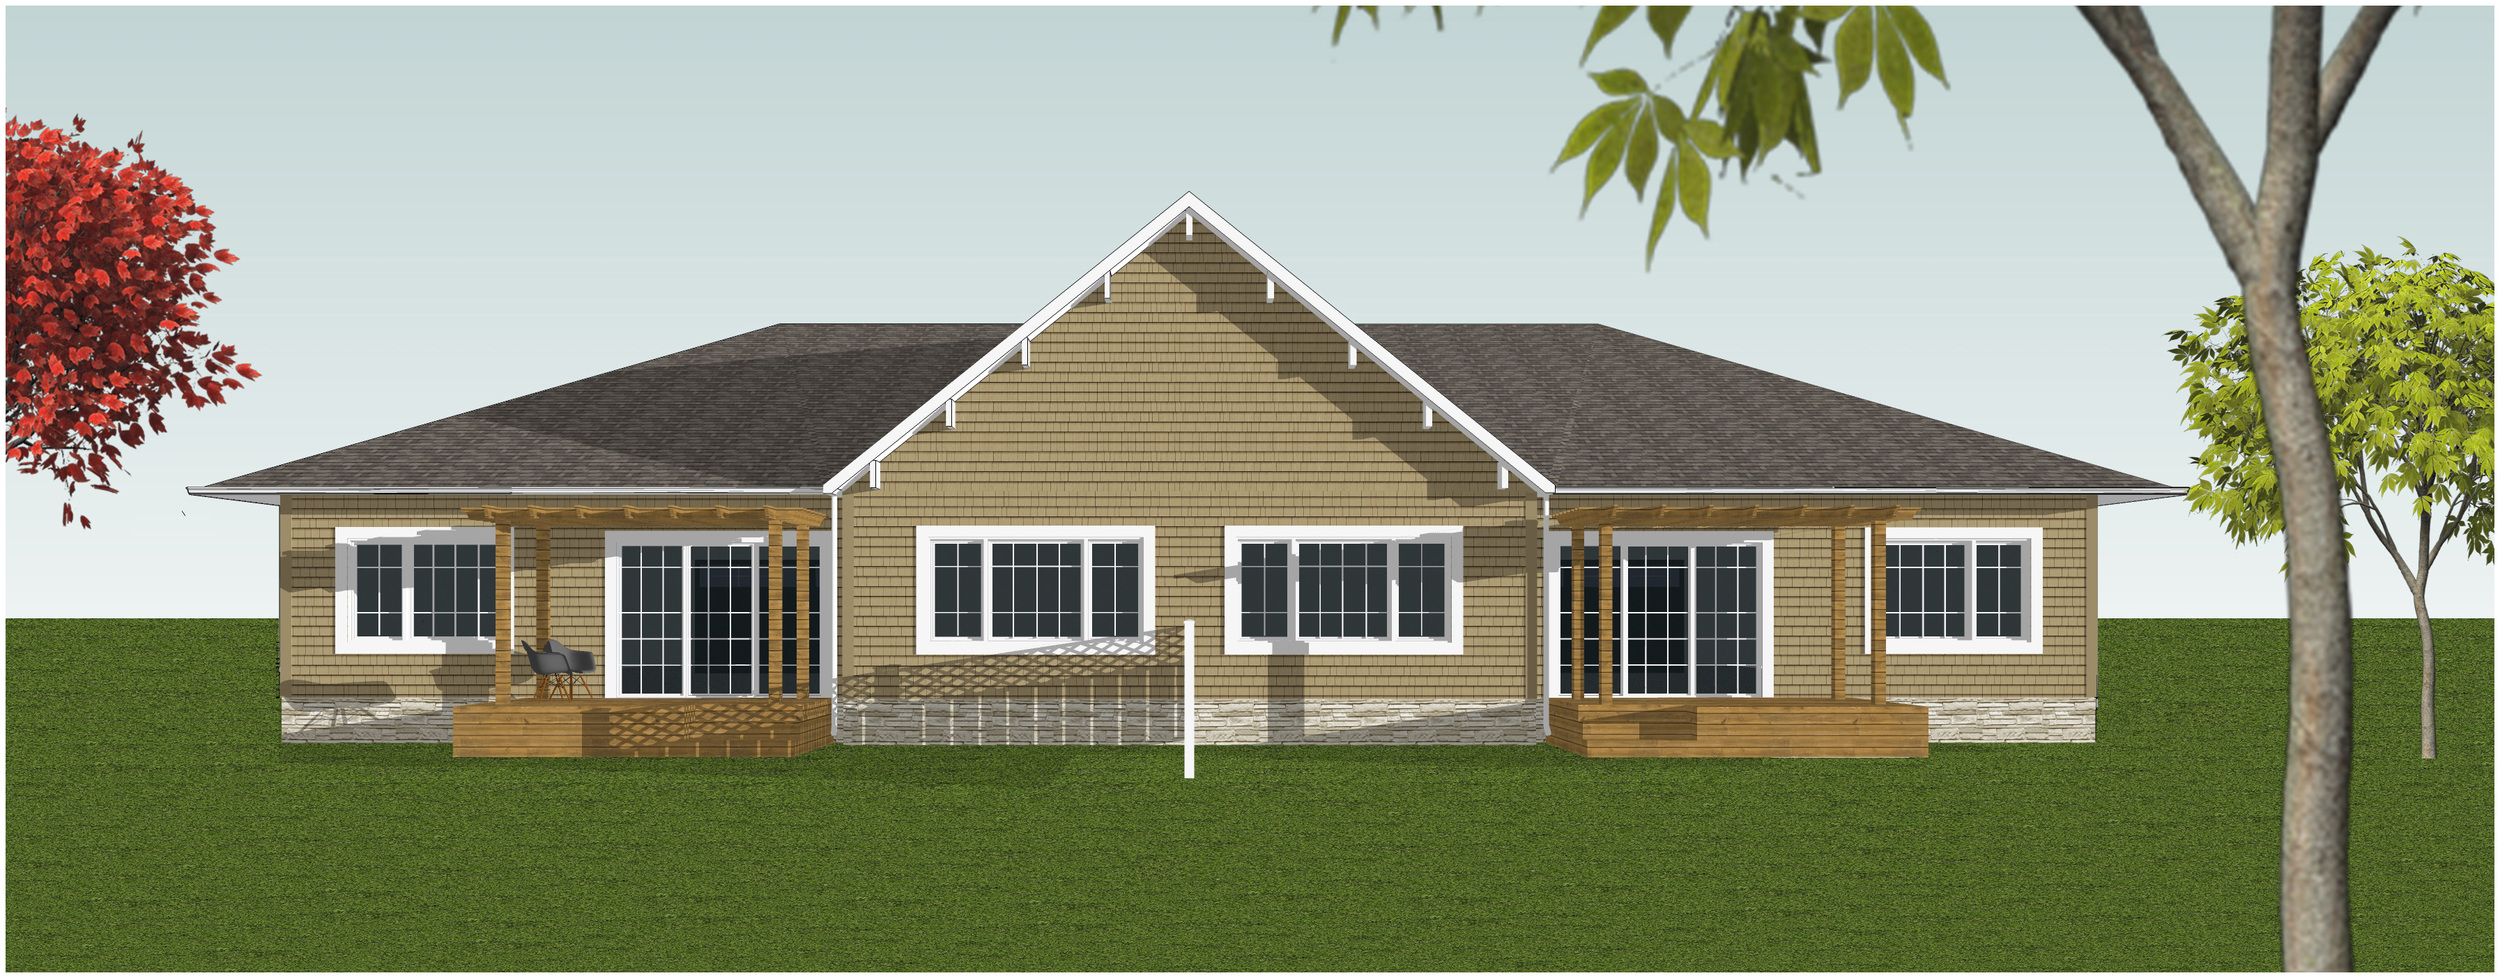 Meighan-Estates_1800_Rear-Elevation_FINAL_o.jpg